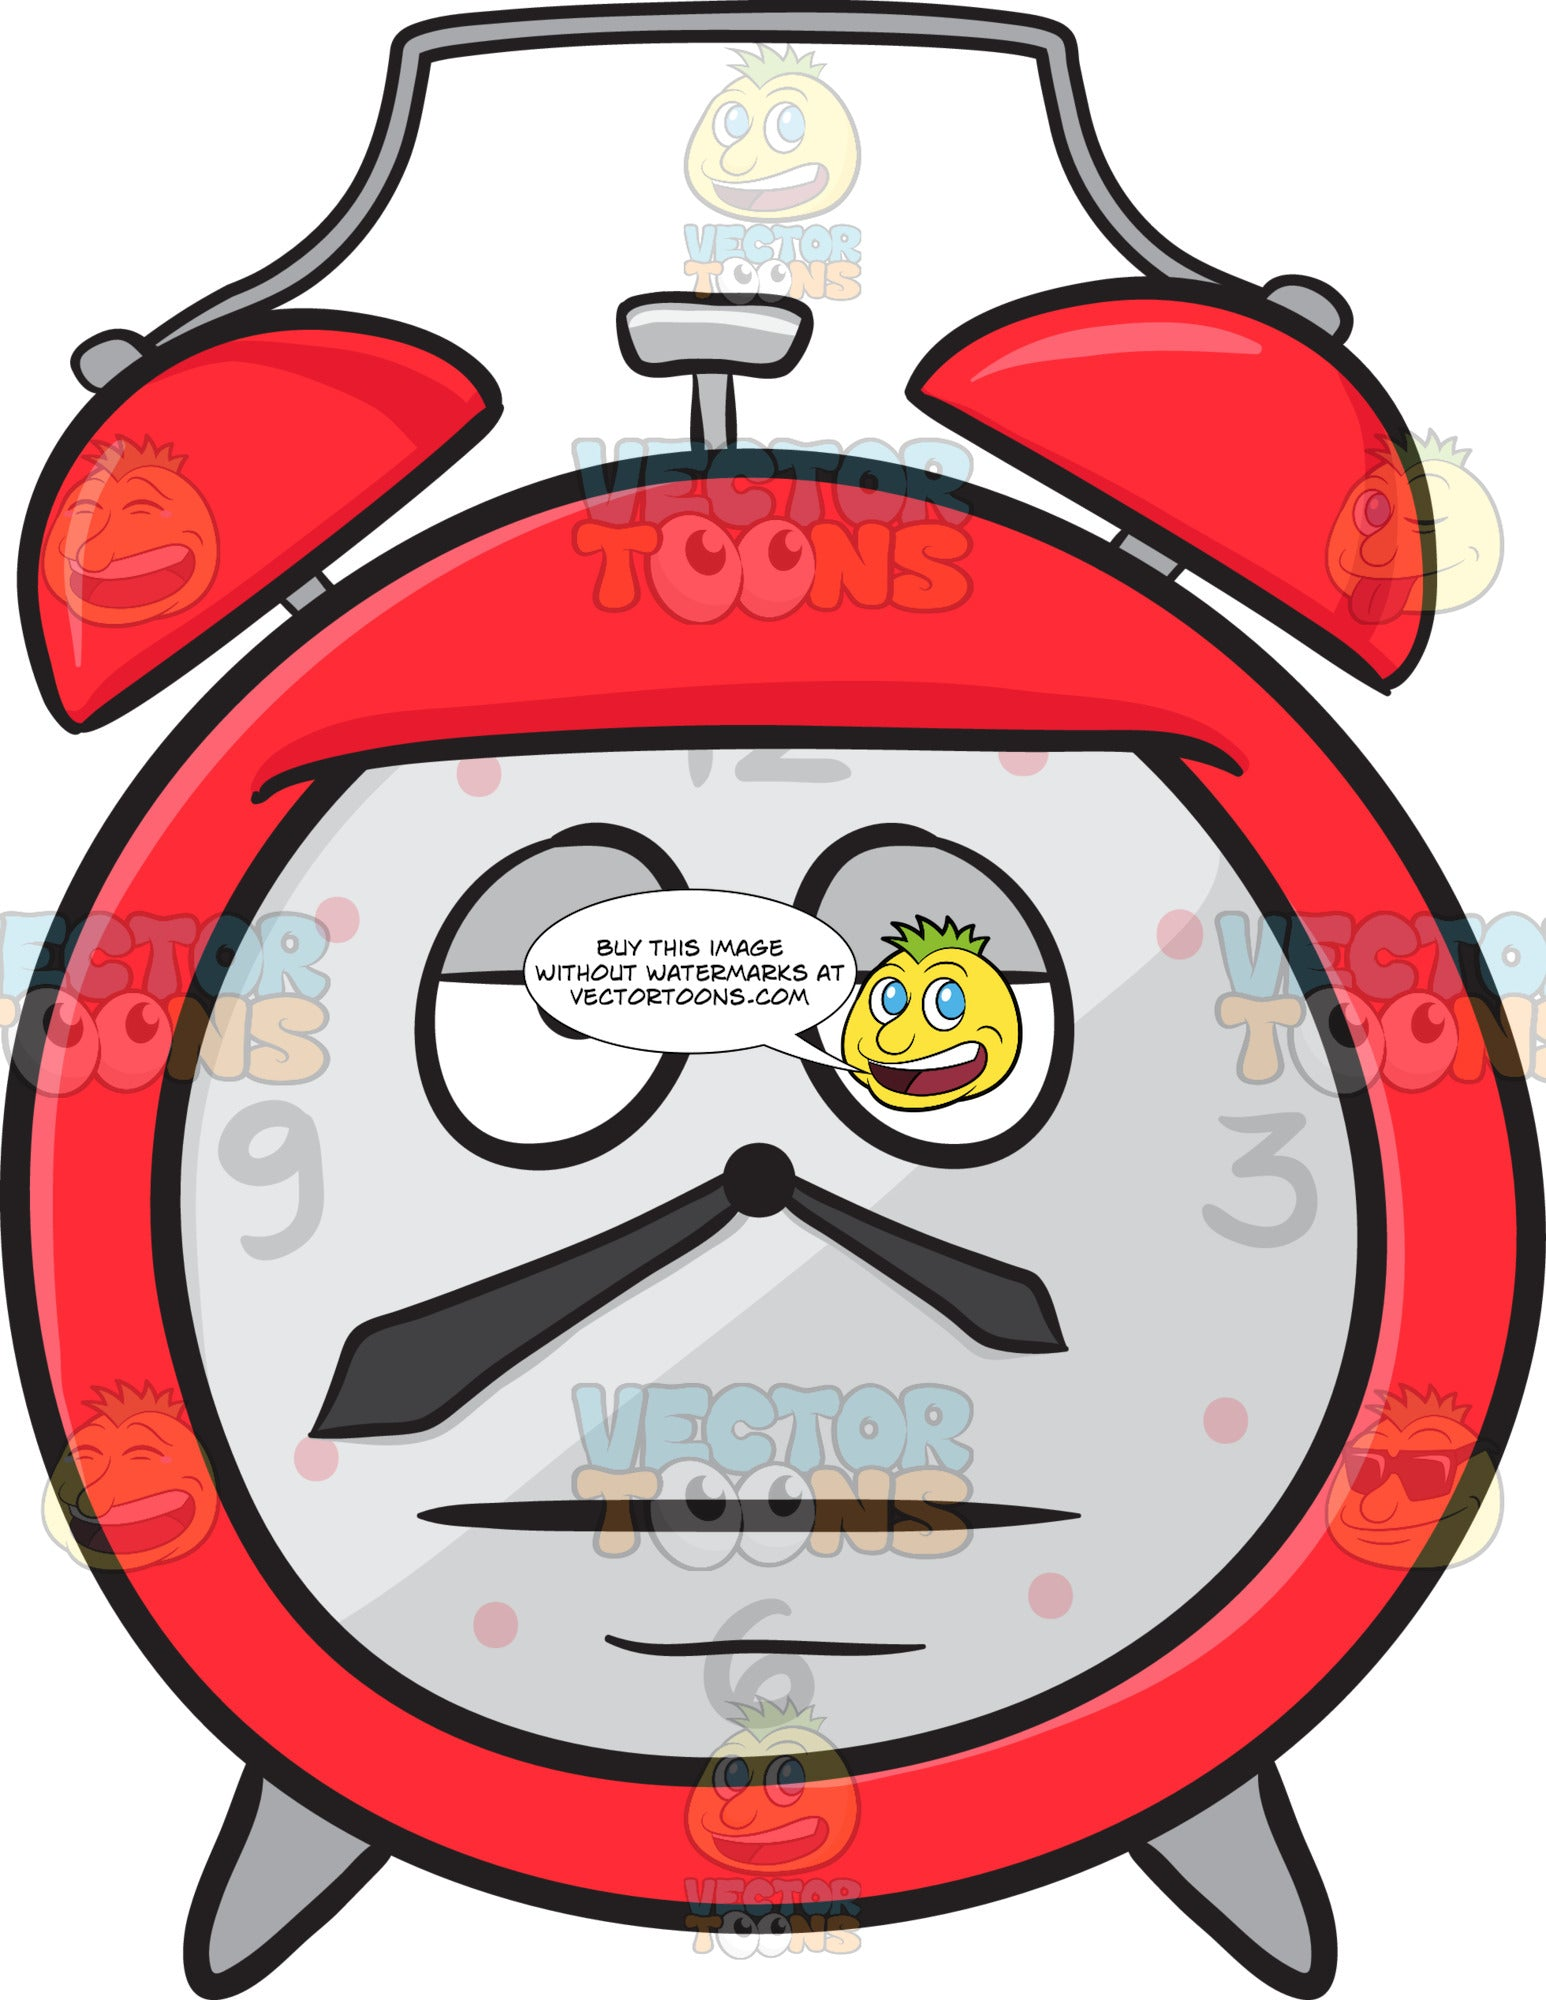 Sleepy Alarm Clock Emoji